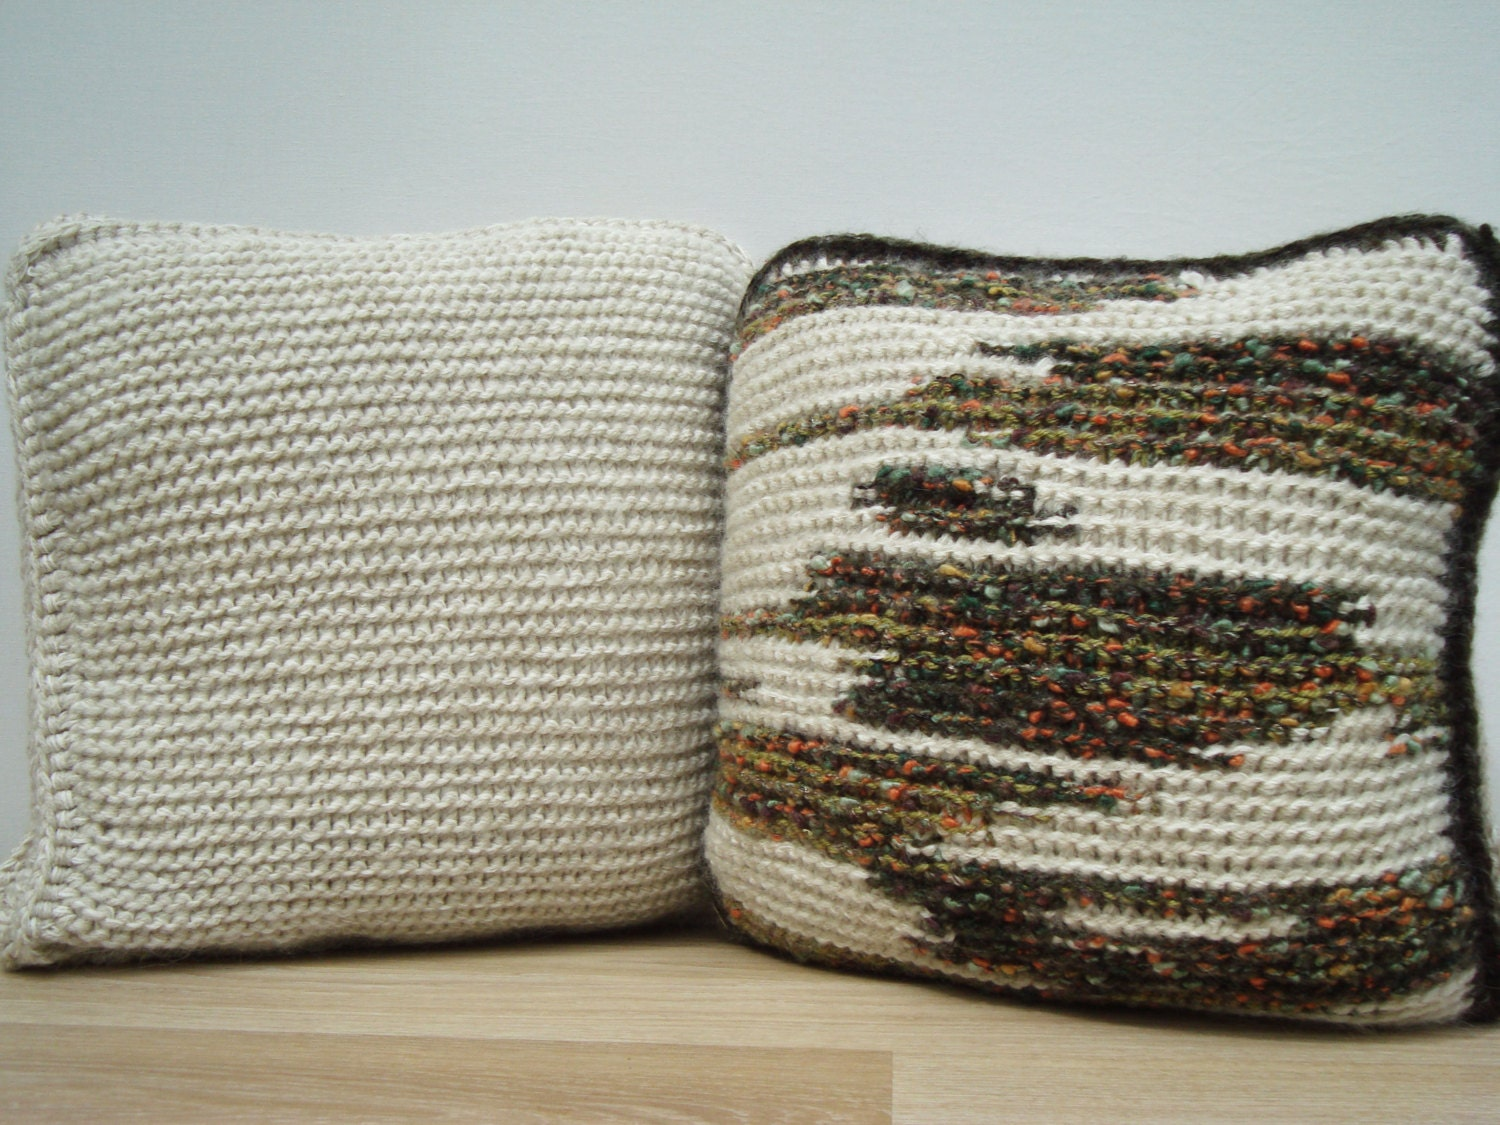 Set Knitting Pillow White Pillow Home Decor Decorative